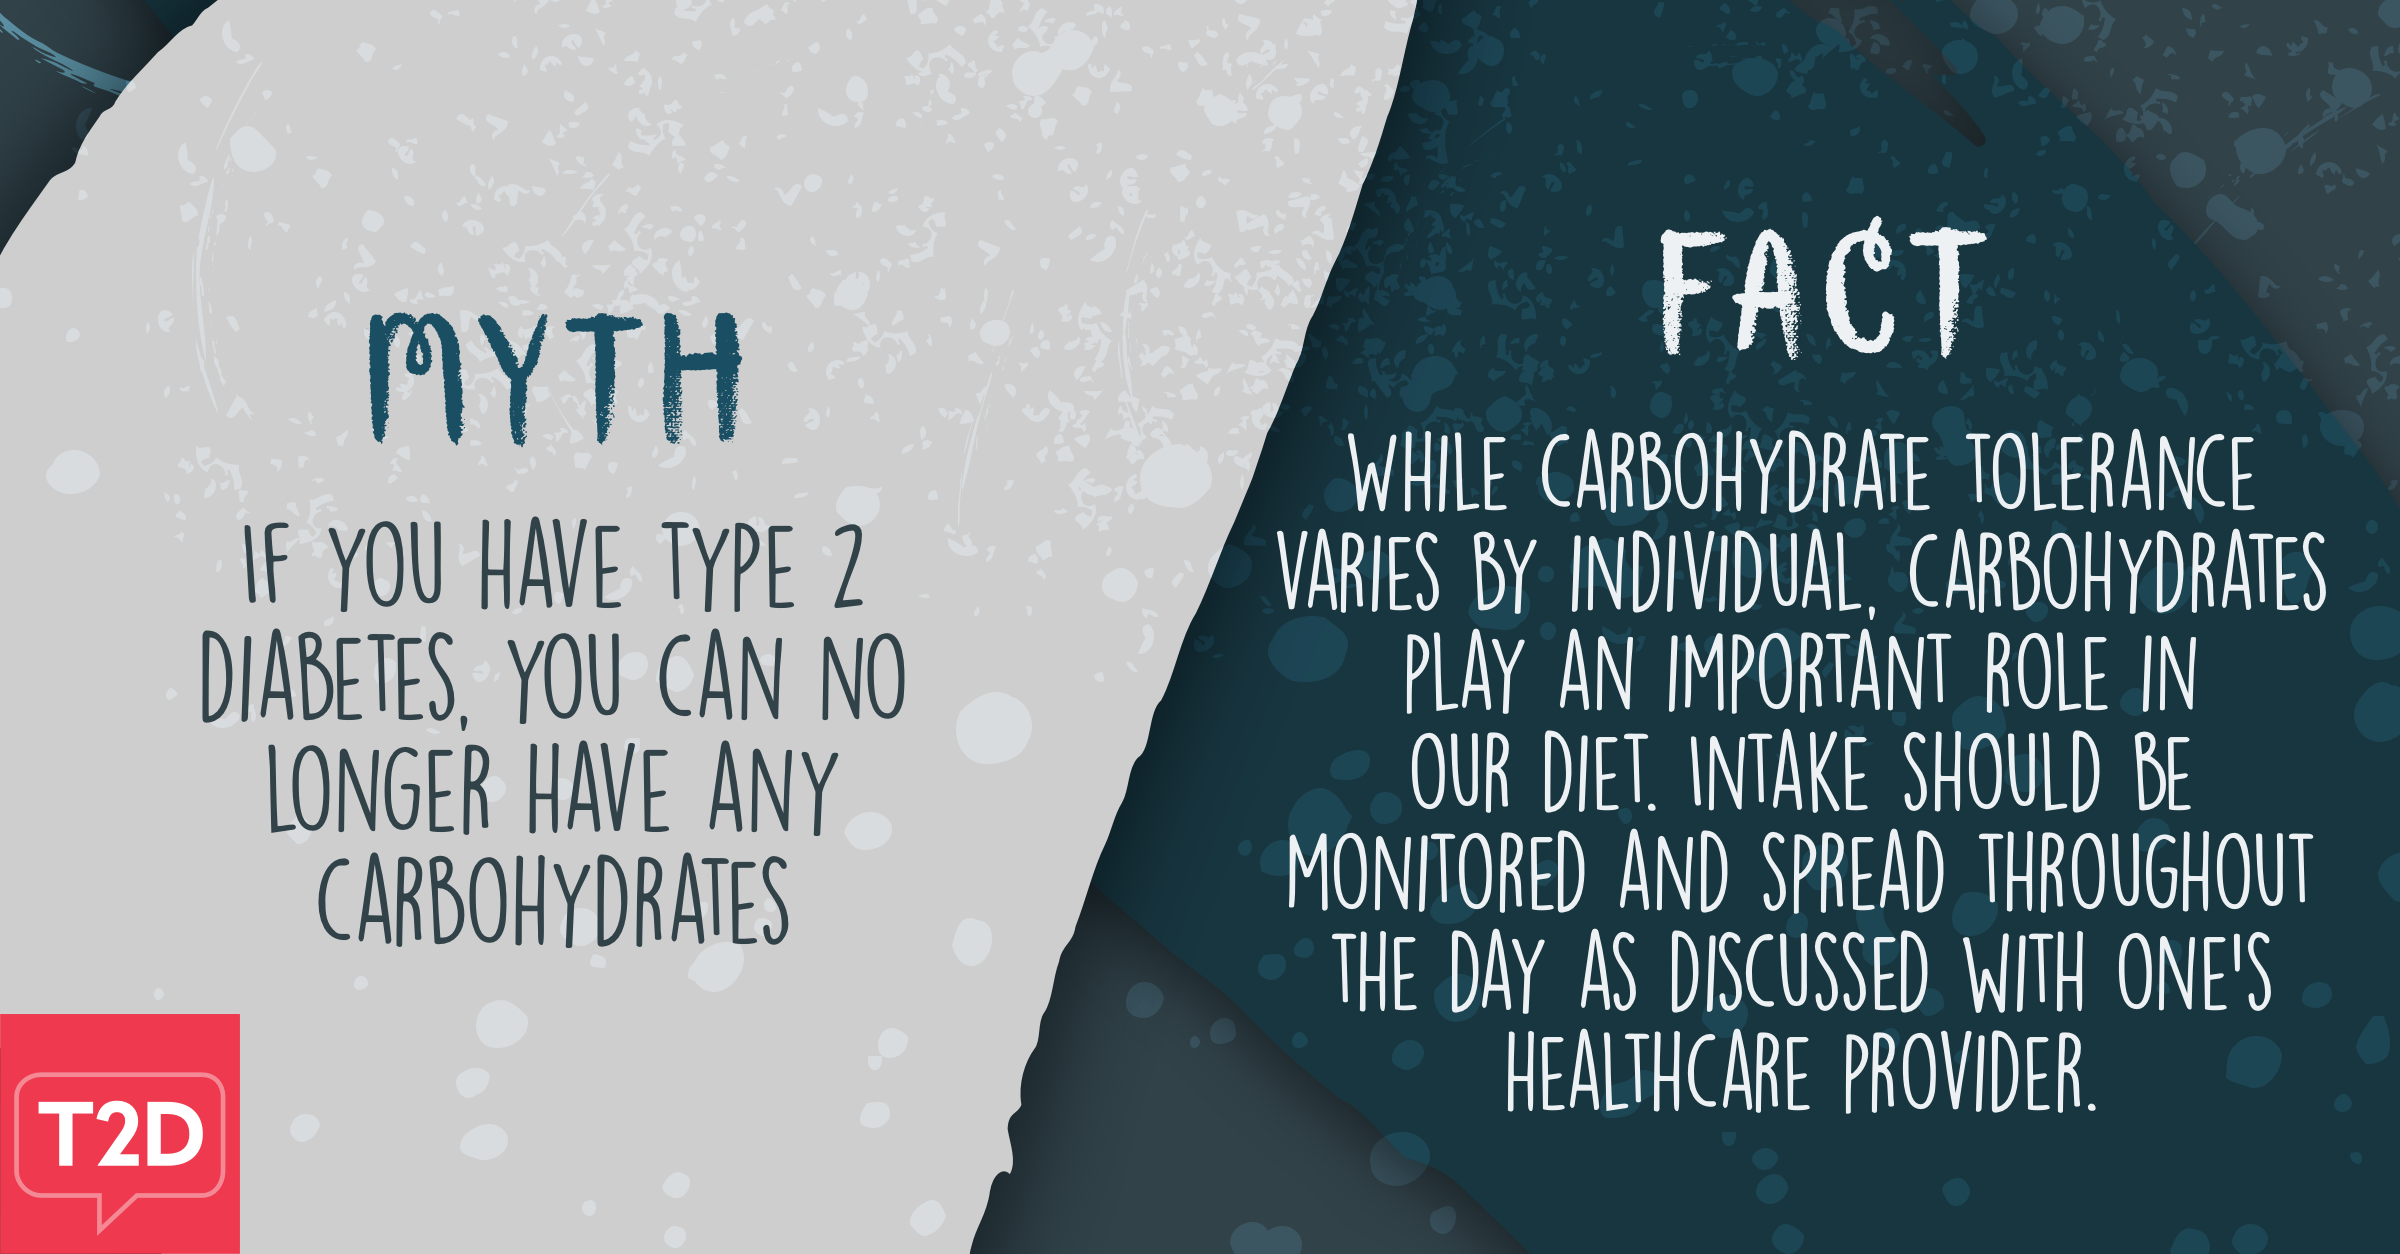 Myth: If you have type 2 diabetes, you can no longer have any carbohydrates. Fact: While carbohydrate tolerance varies by individual, carbohydrates play an important role in our diet. Intake should be monitored and spread throughout the day as discussed with one's healthcare provider.